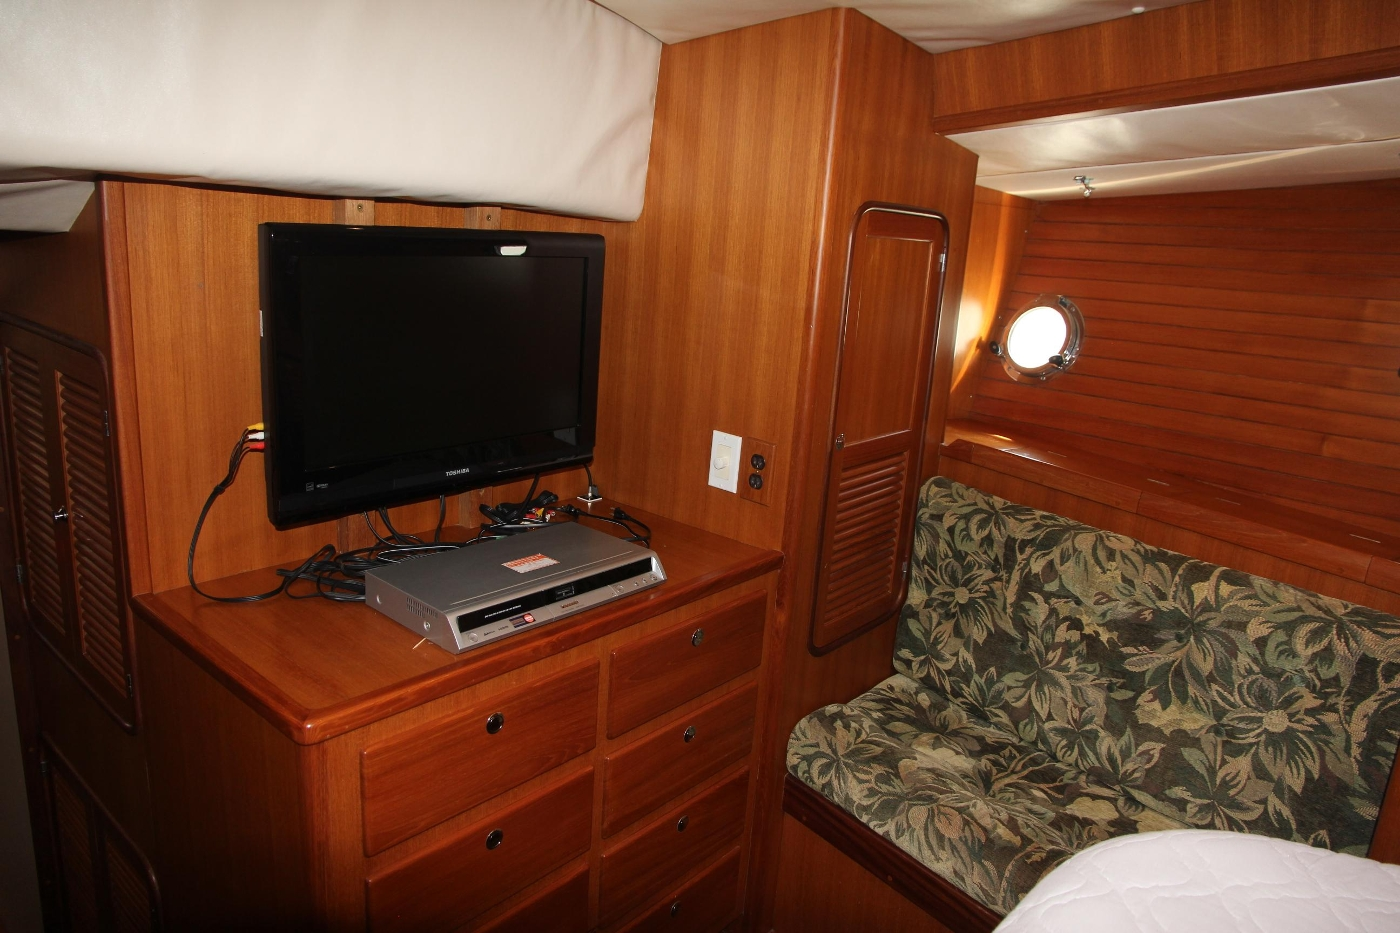 2000 Nordhavn Pilothouse, Television and Storgae